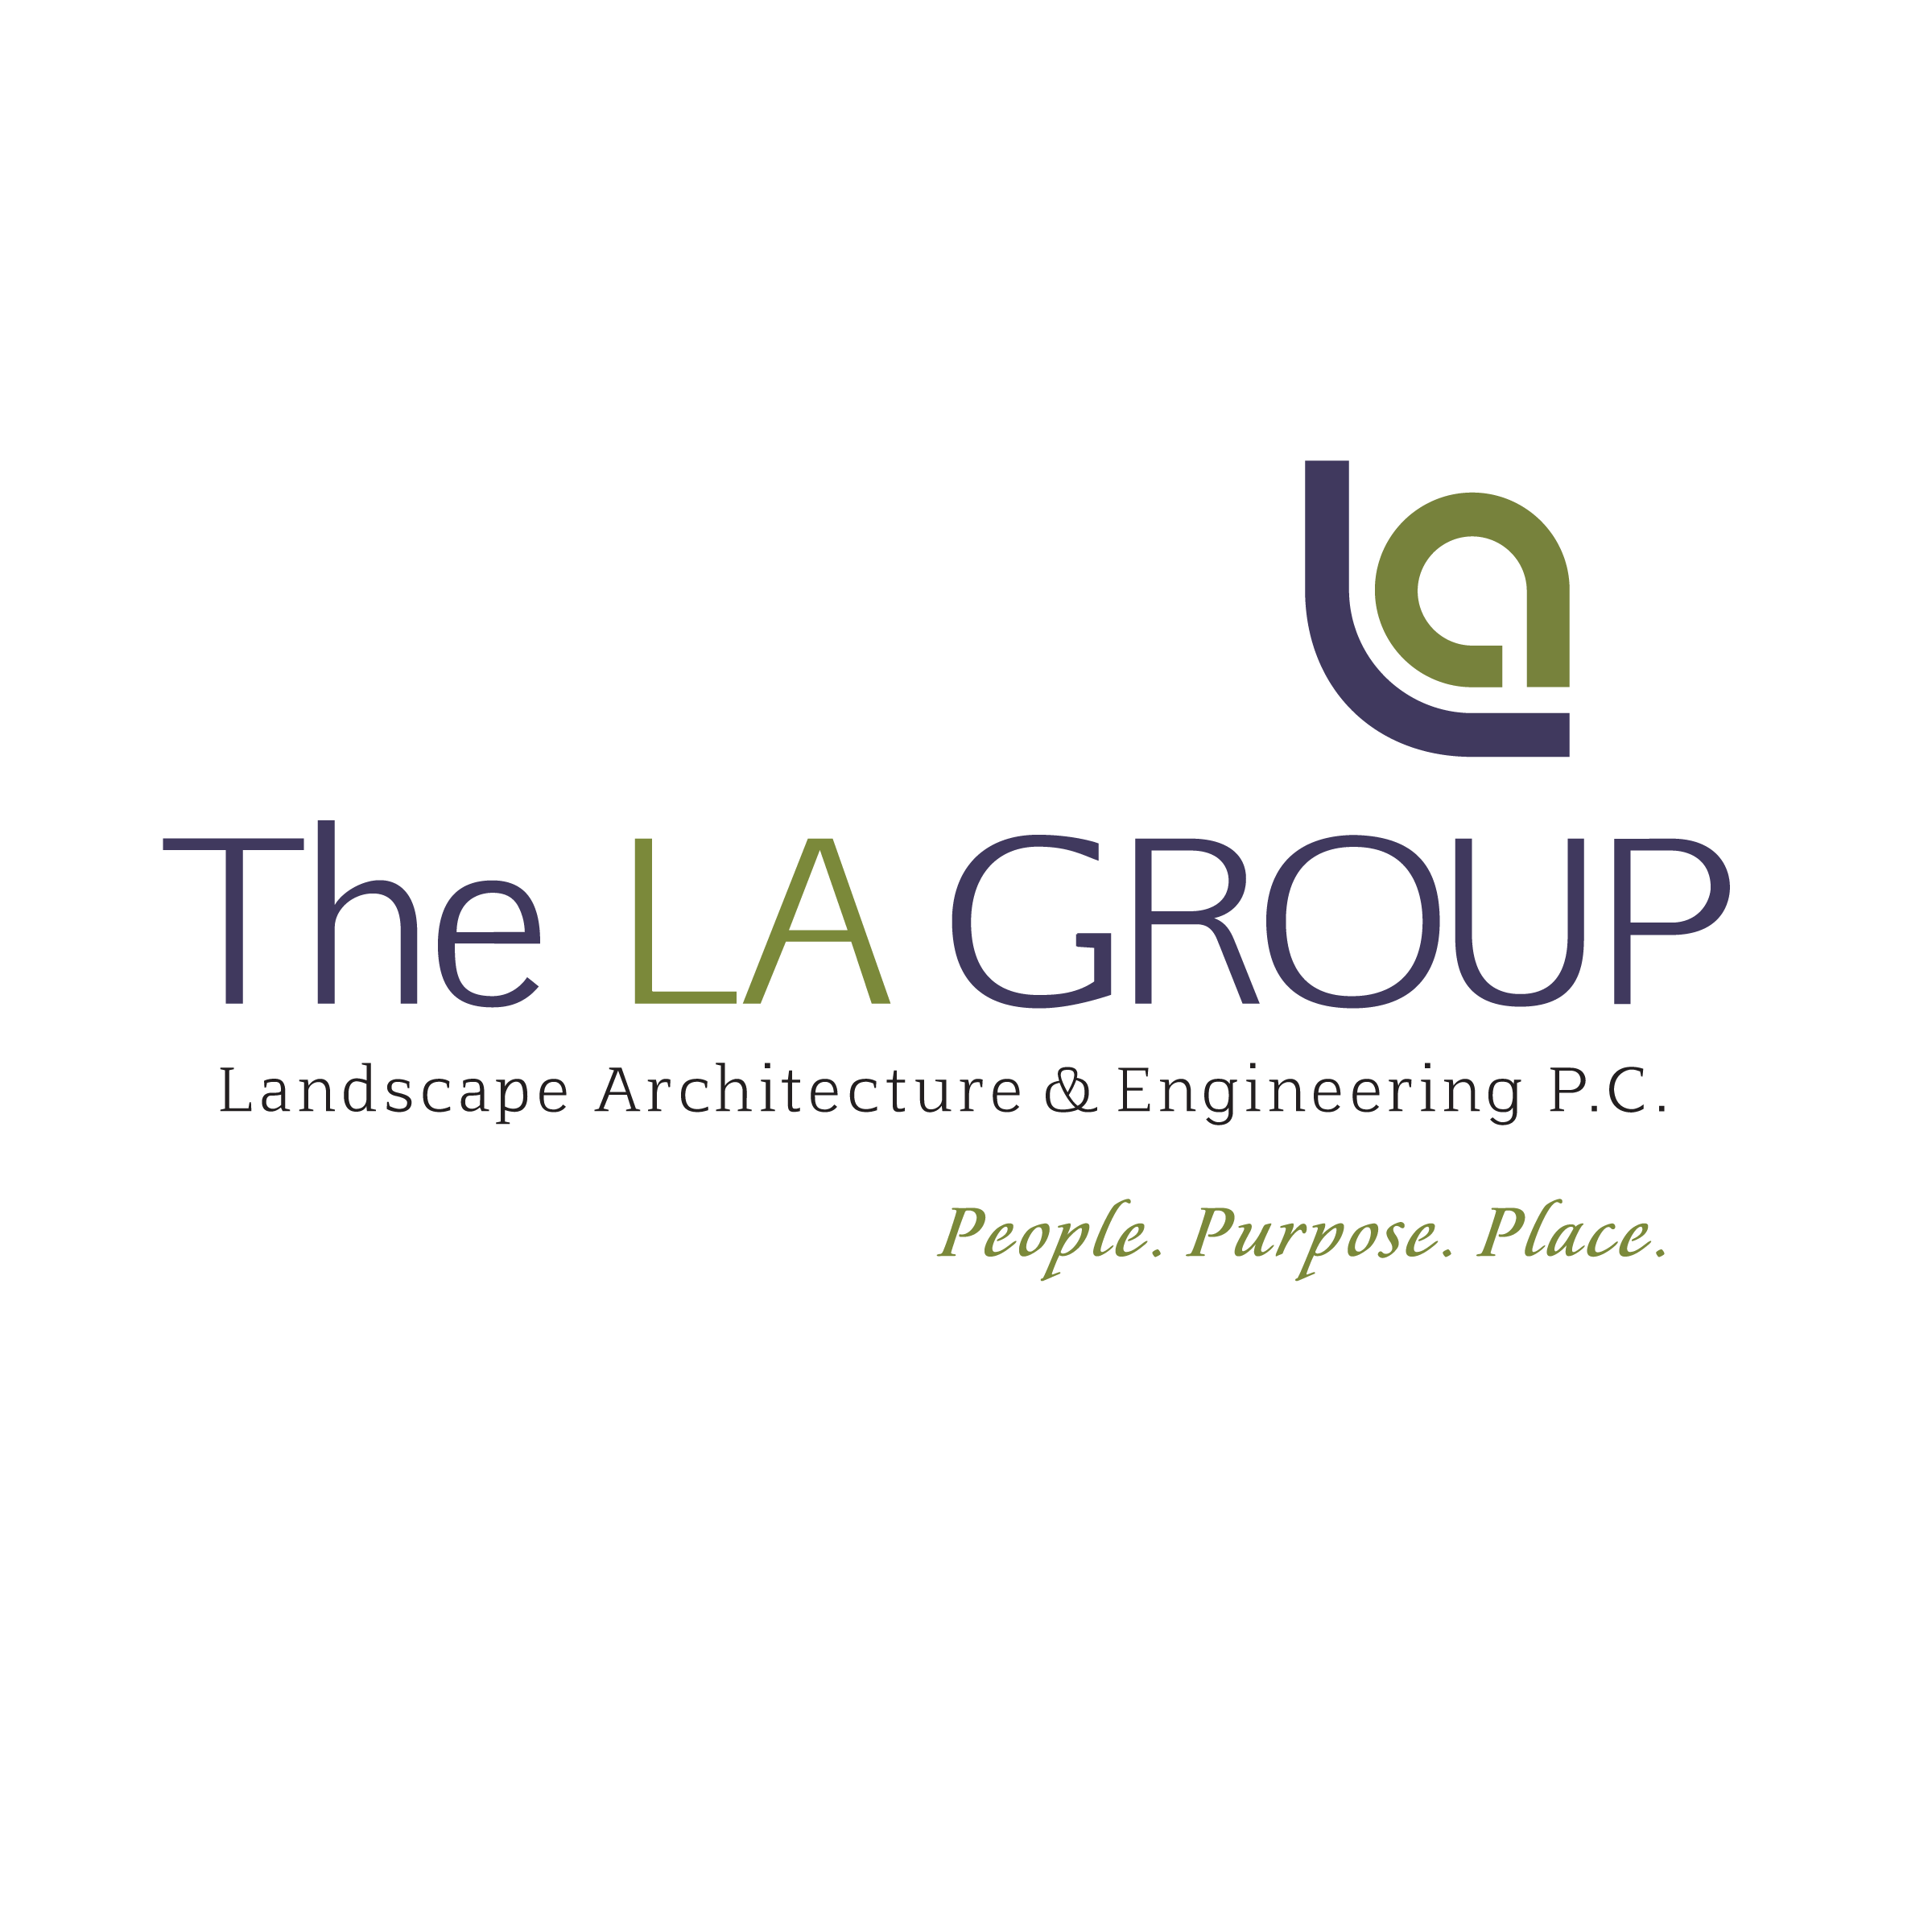 The LA Group Landscape Architecture and Engineering, P.C. logo